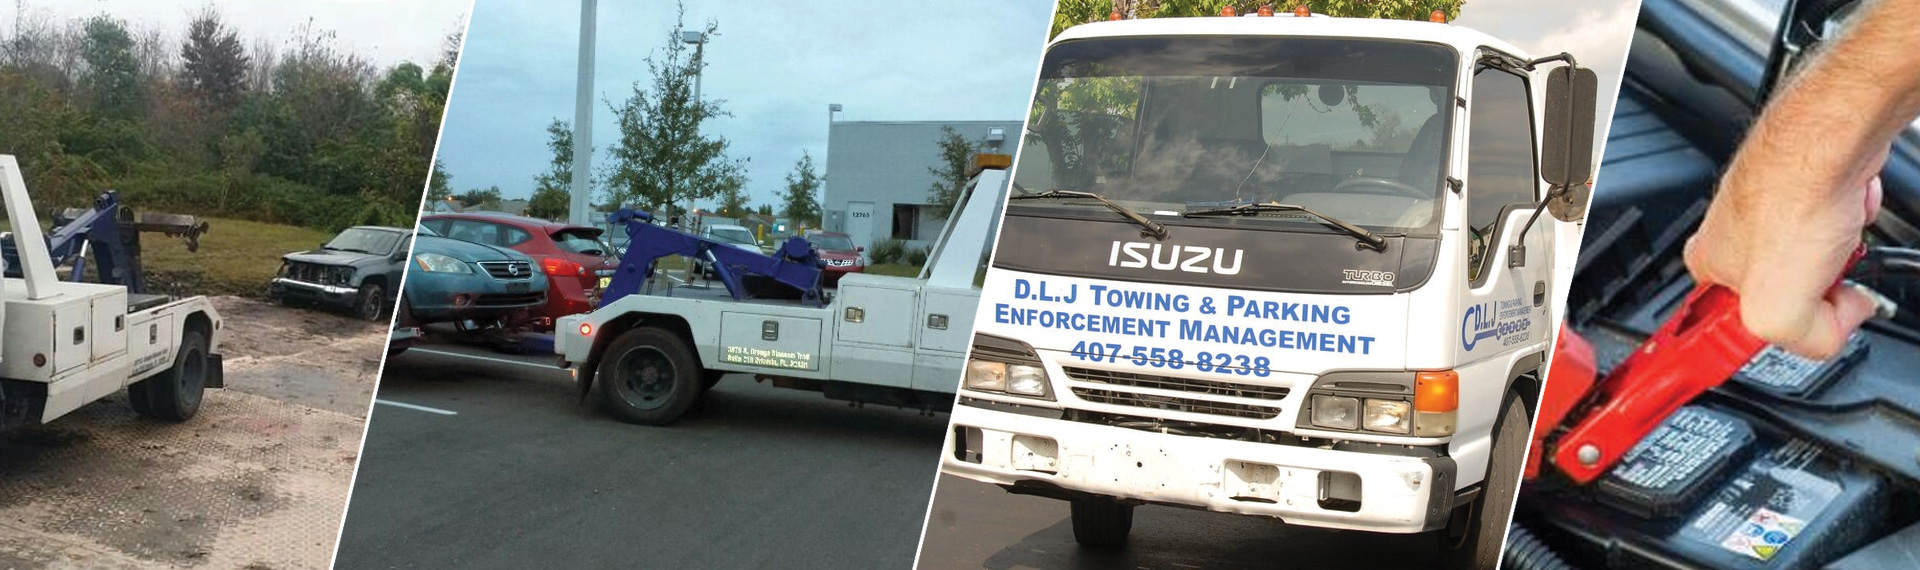 DLJ Towing & Roadside Assistance Altamonte Springs FL